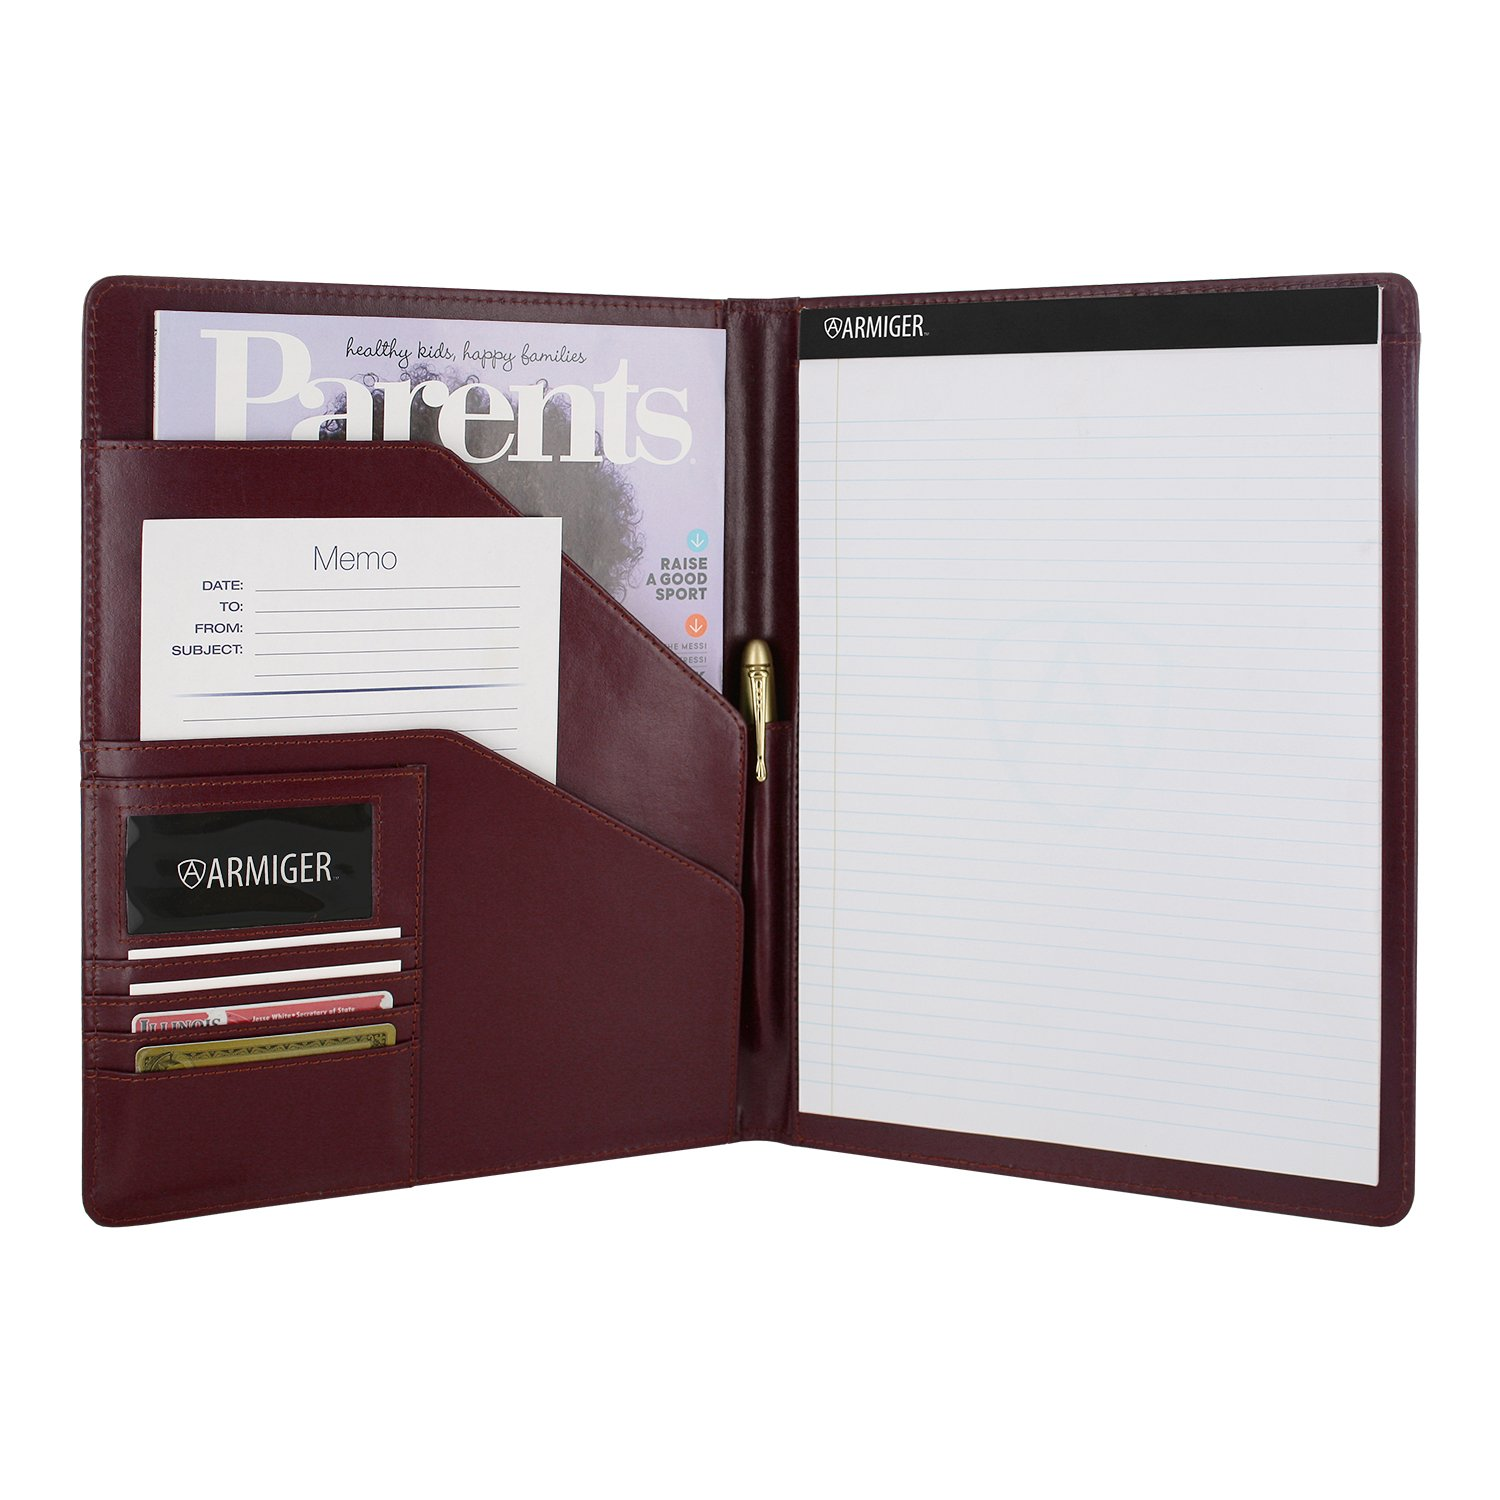 Armiger Executive Bonded Leather Professional Business Document and Business Card Holder Resume Interview Portfolio Pad folio Organizer with Letter Size Writing Notepad - Burgundy